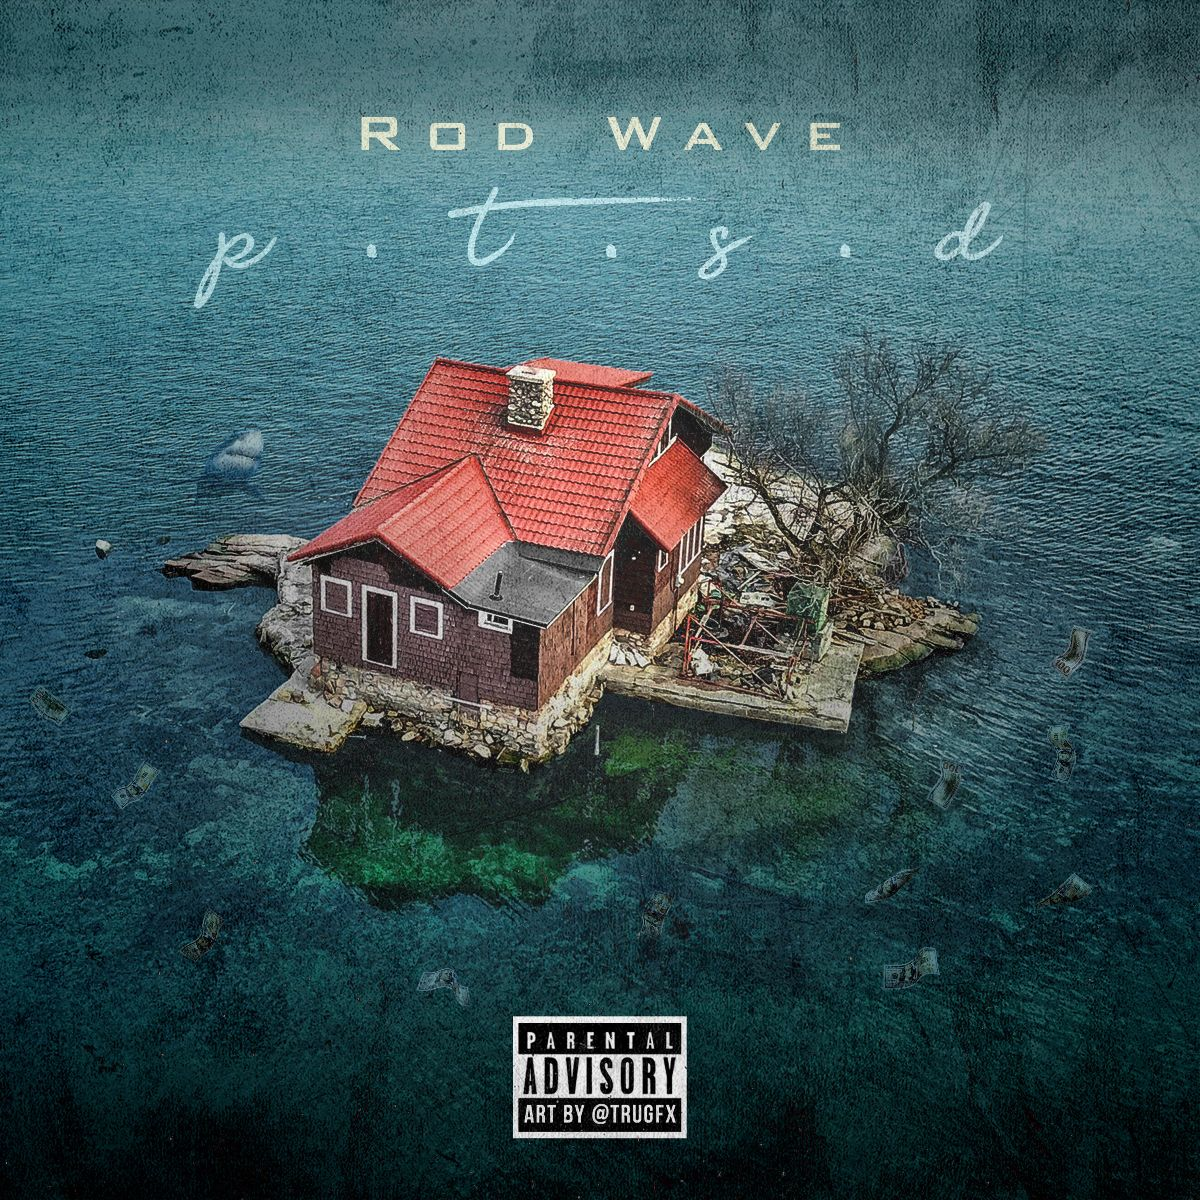 Florida's Rod Wave Melodically Processes His Trauma in the Soulful 'PTSD' Project